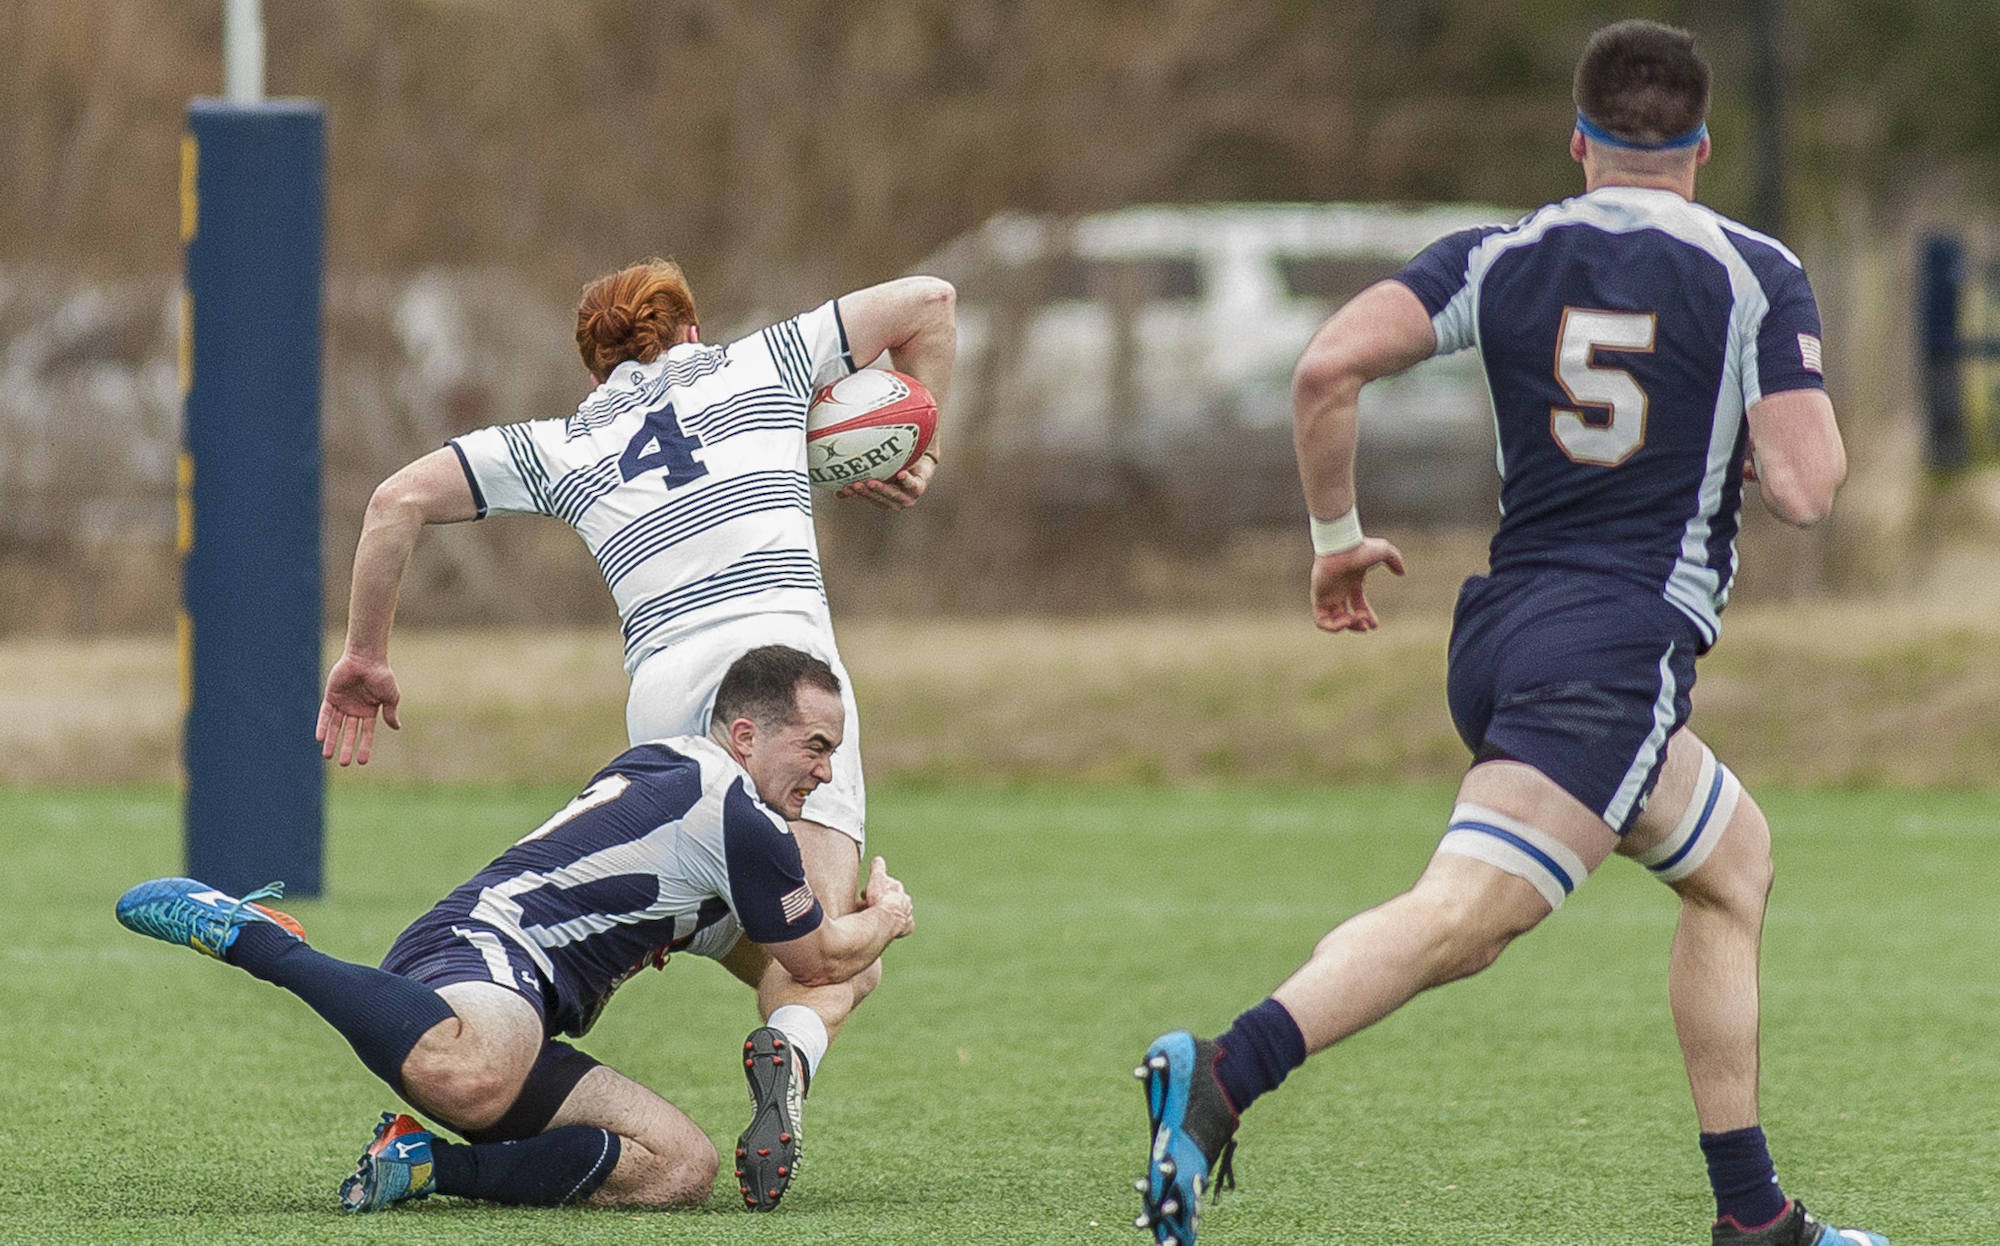 Penn State v Navy Feb 2017 - Colleen McCloskey photos for Goff Rugby Report.